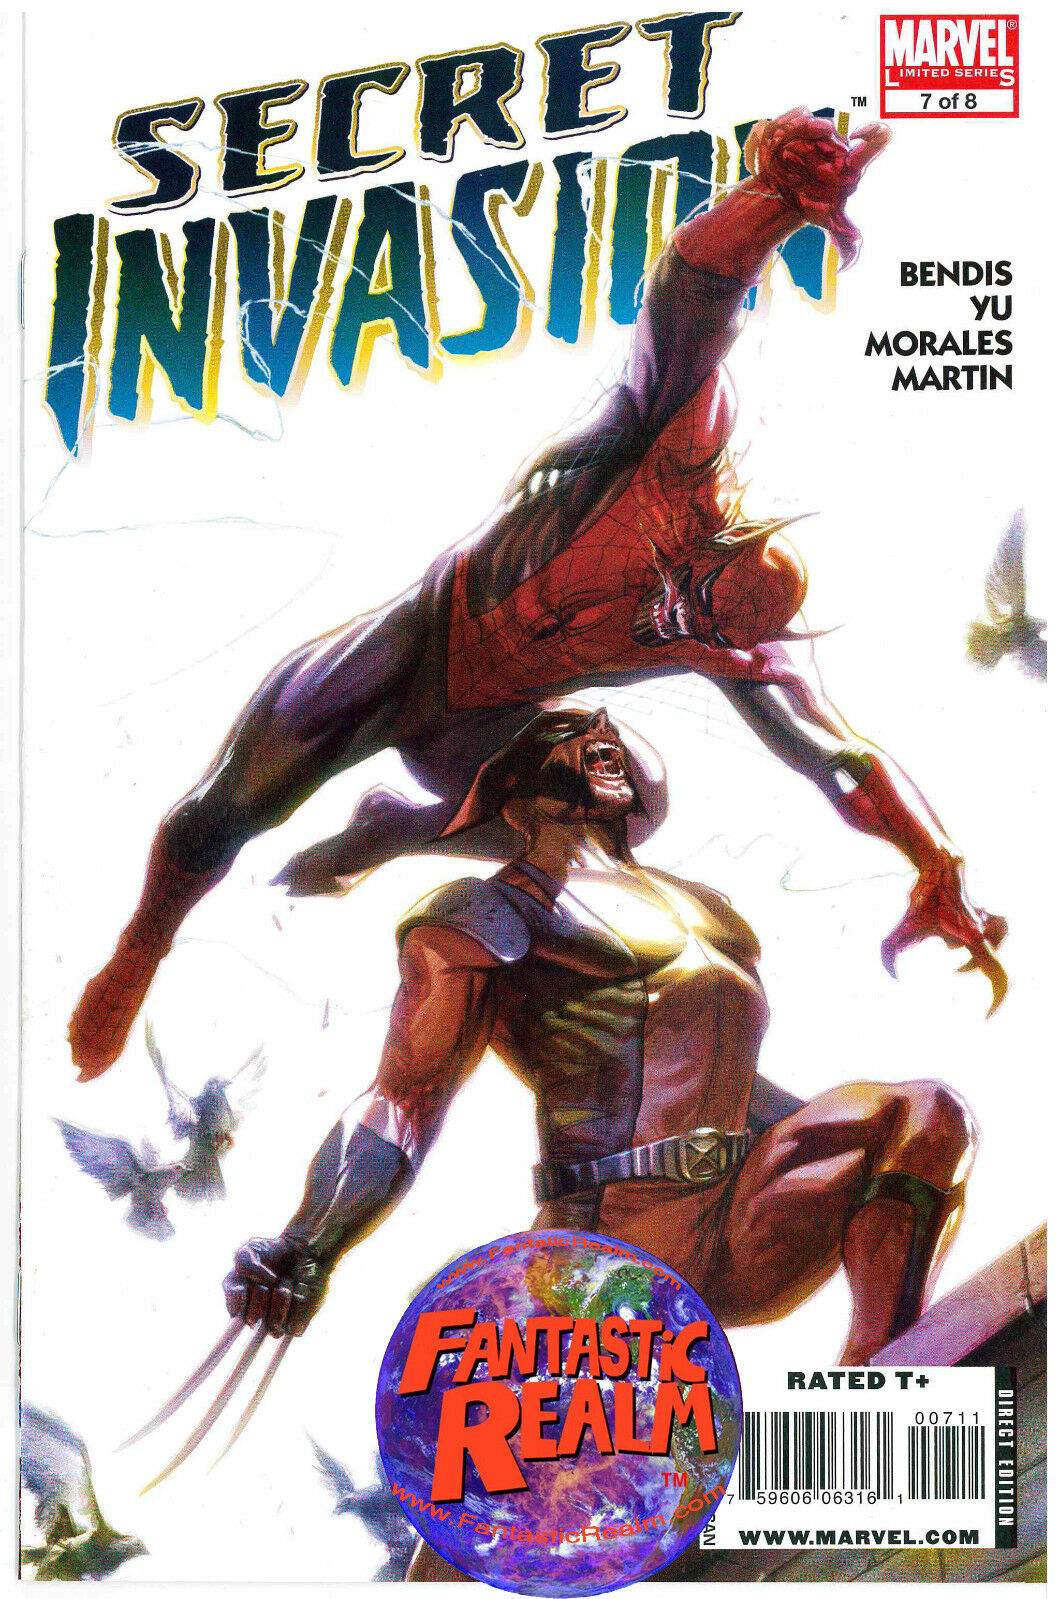 SECRET INVASION # 7 OF 8 (WOLVERINE AVENGERS SPIDERMAN) BENDIS COVER MARVEL